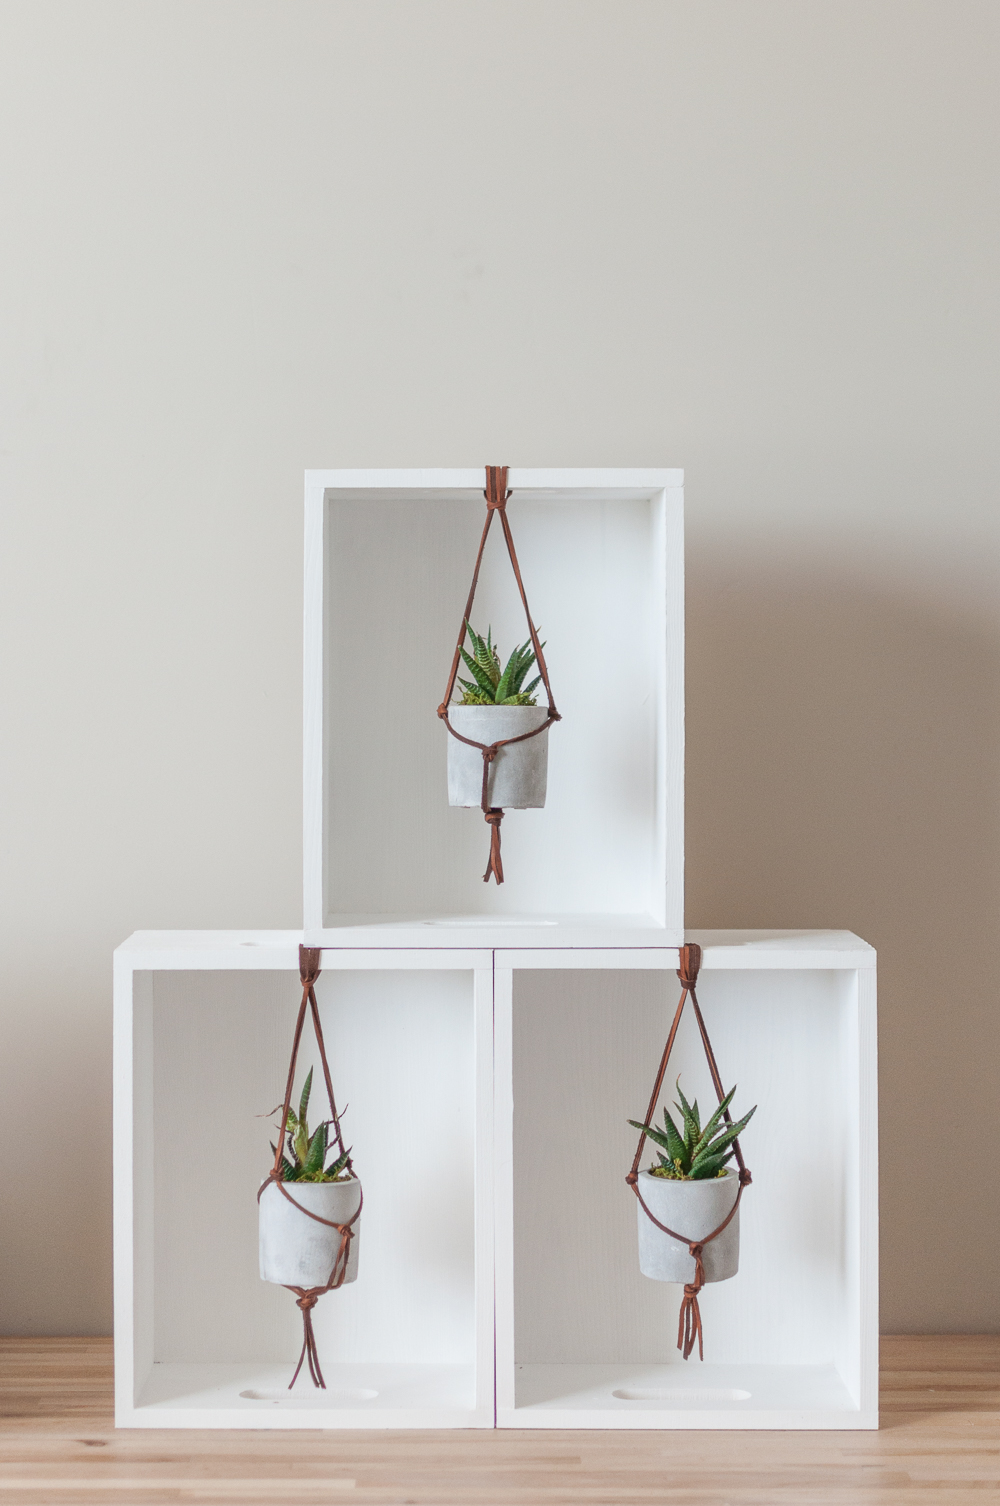 Leather Macrame Hanging Succulent Planter Tutorial Cherished Bliss